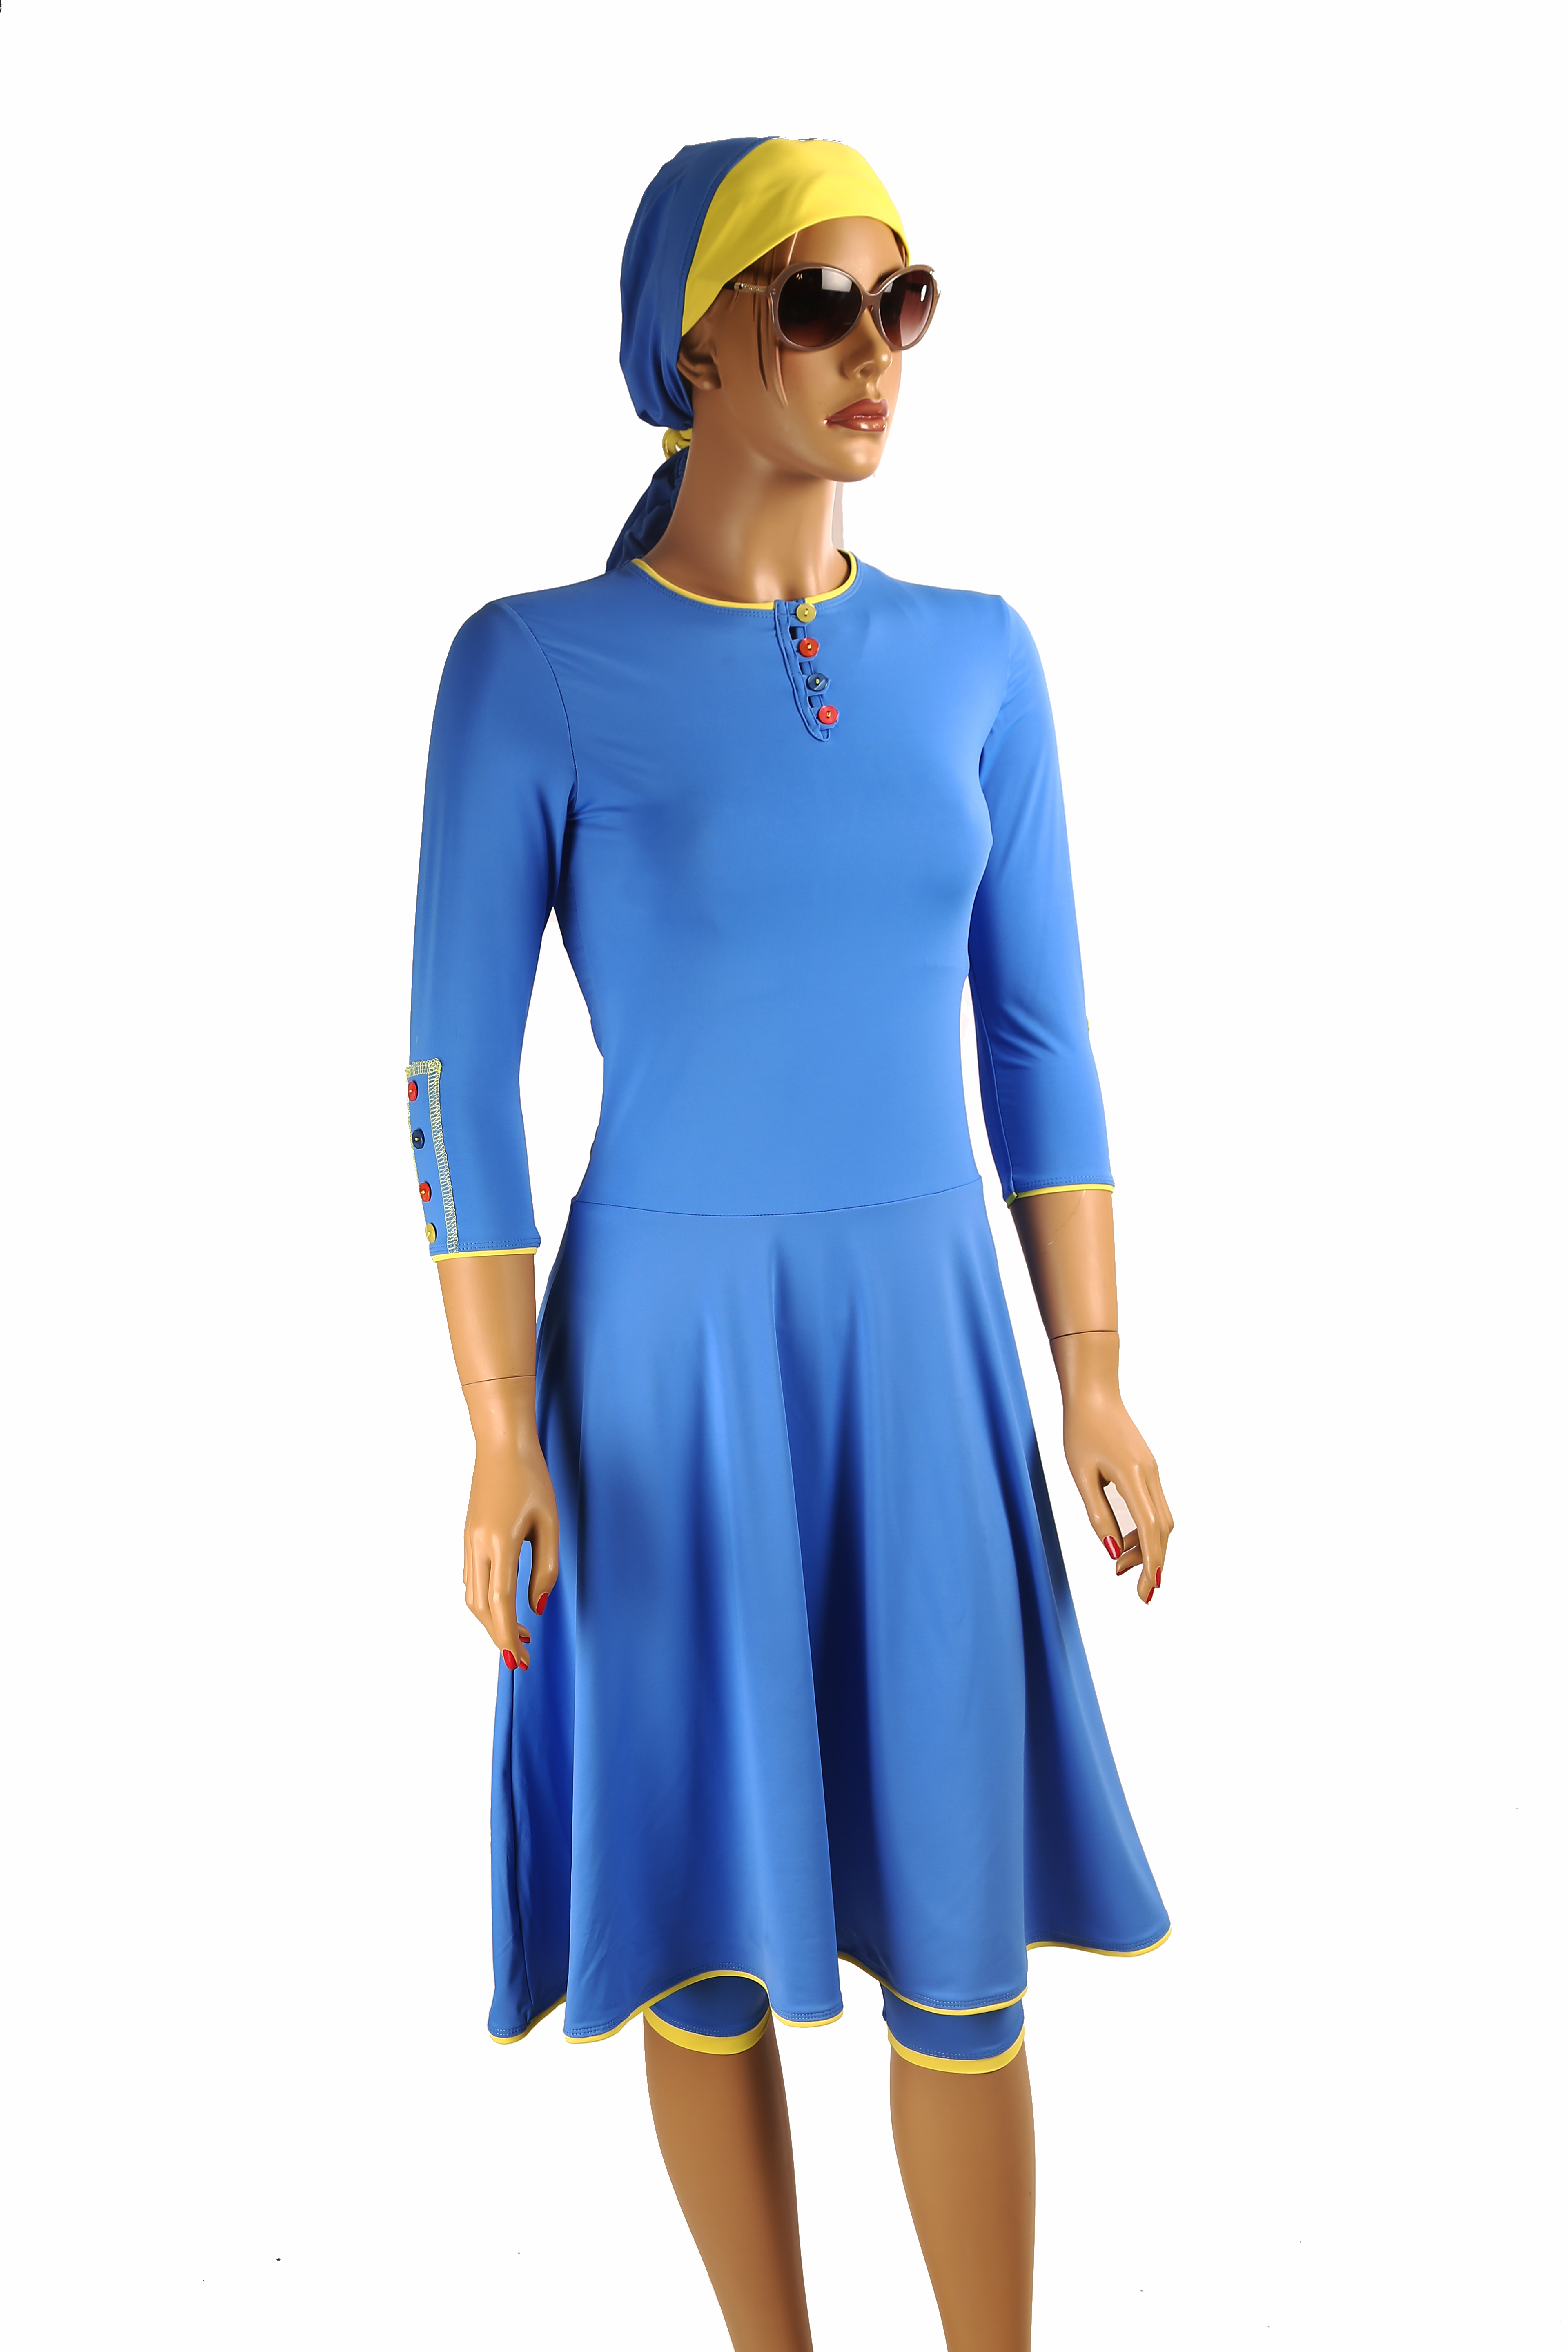 Ocean blue modest flared swim dress Discontinued products